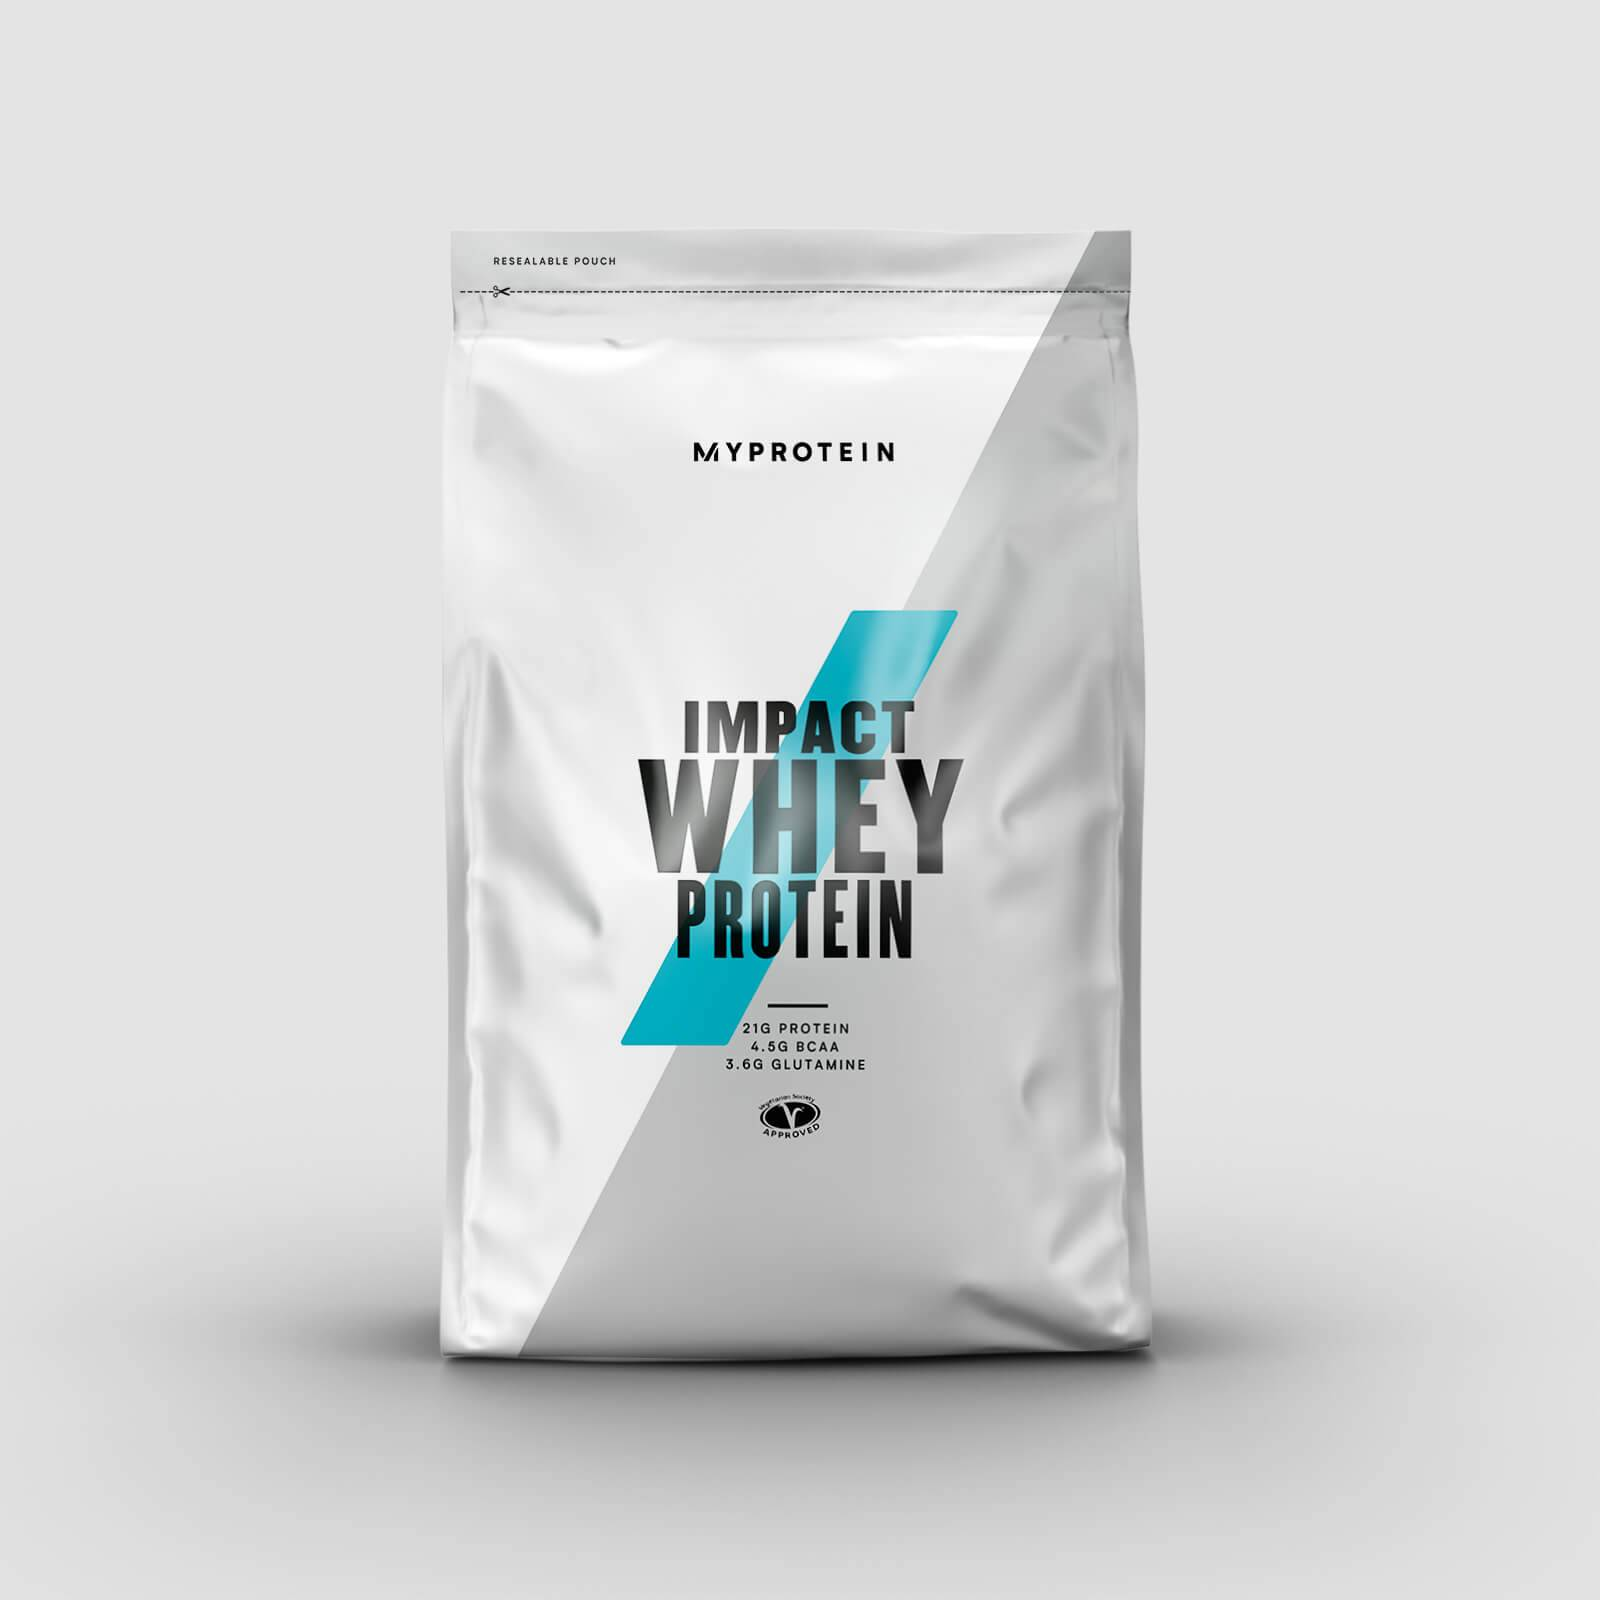 Myprotein Impact Whey Protein - 1kg - White Chocolate - New and Improved